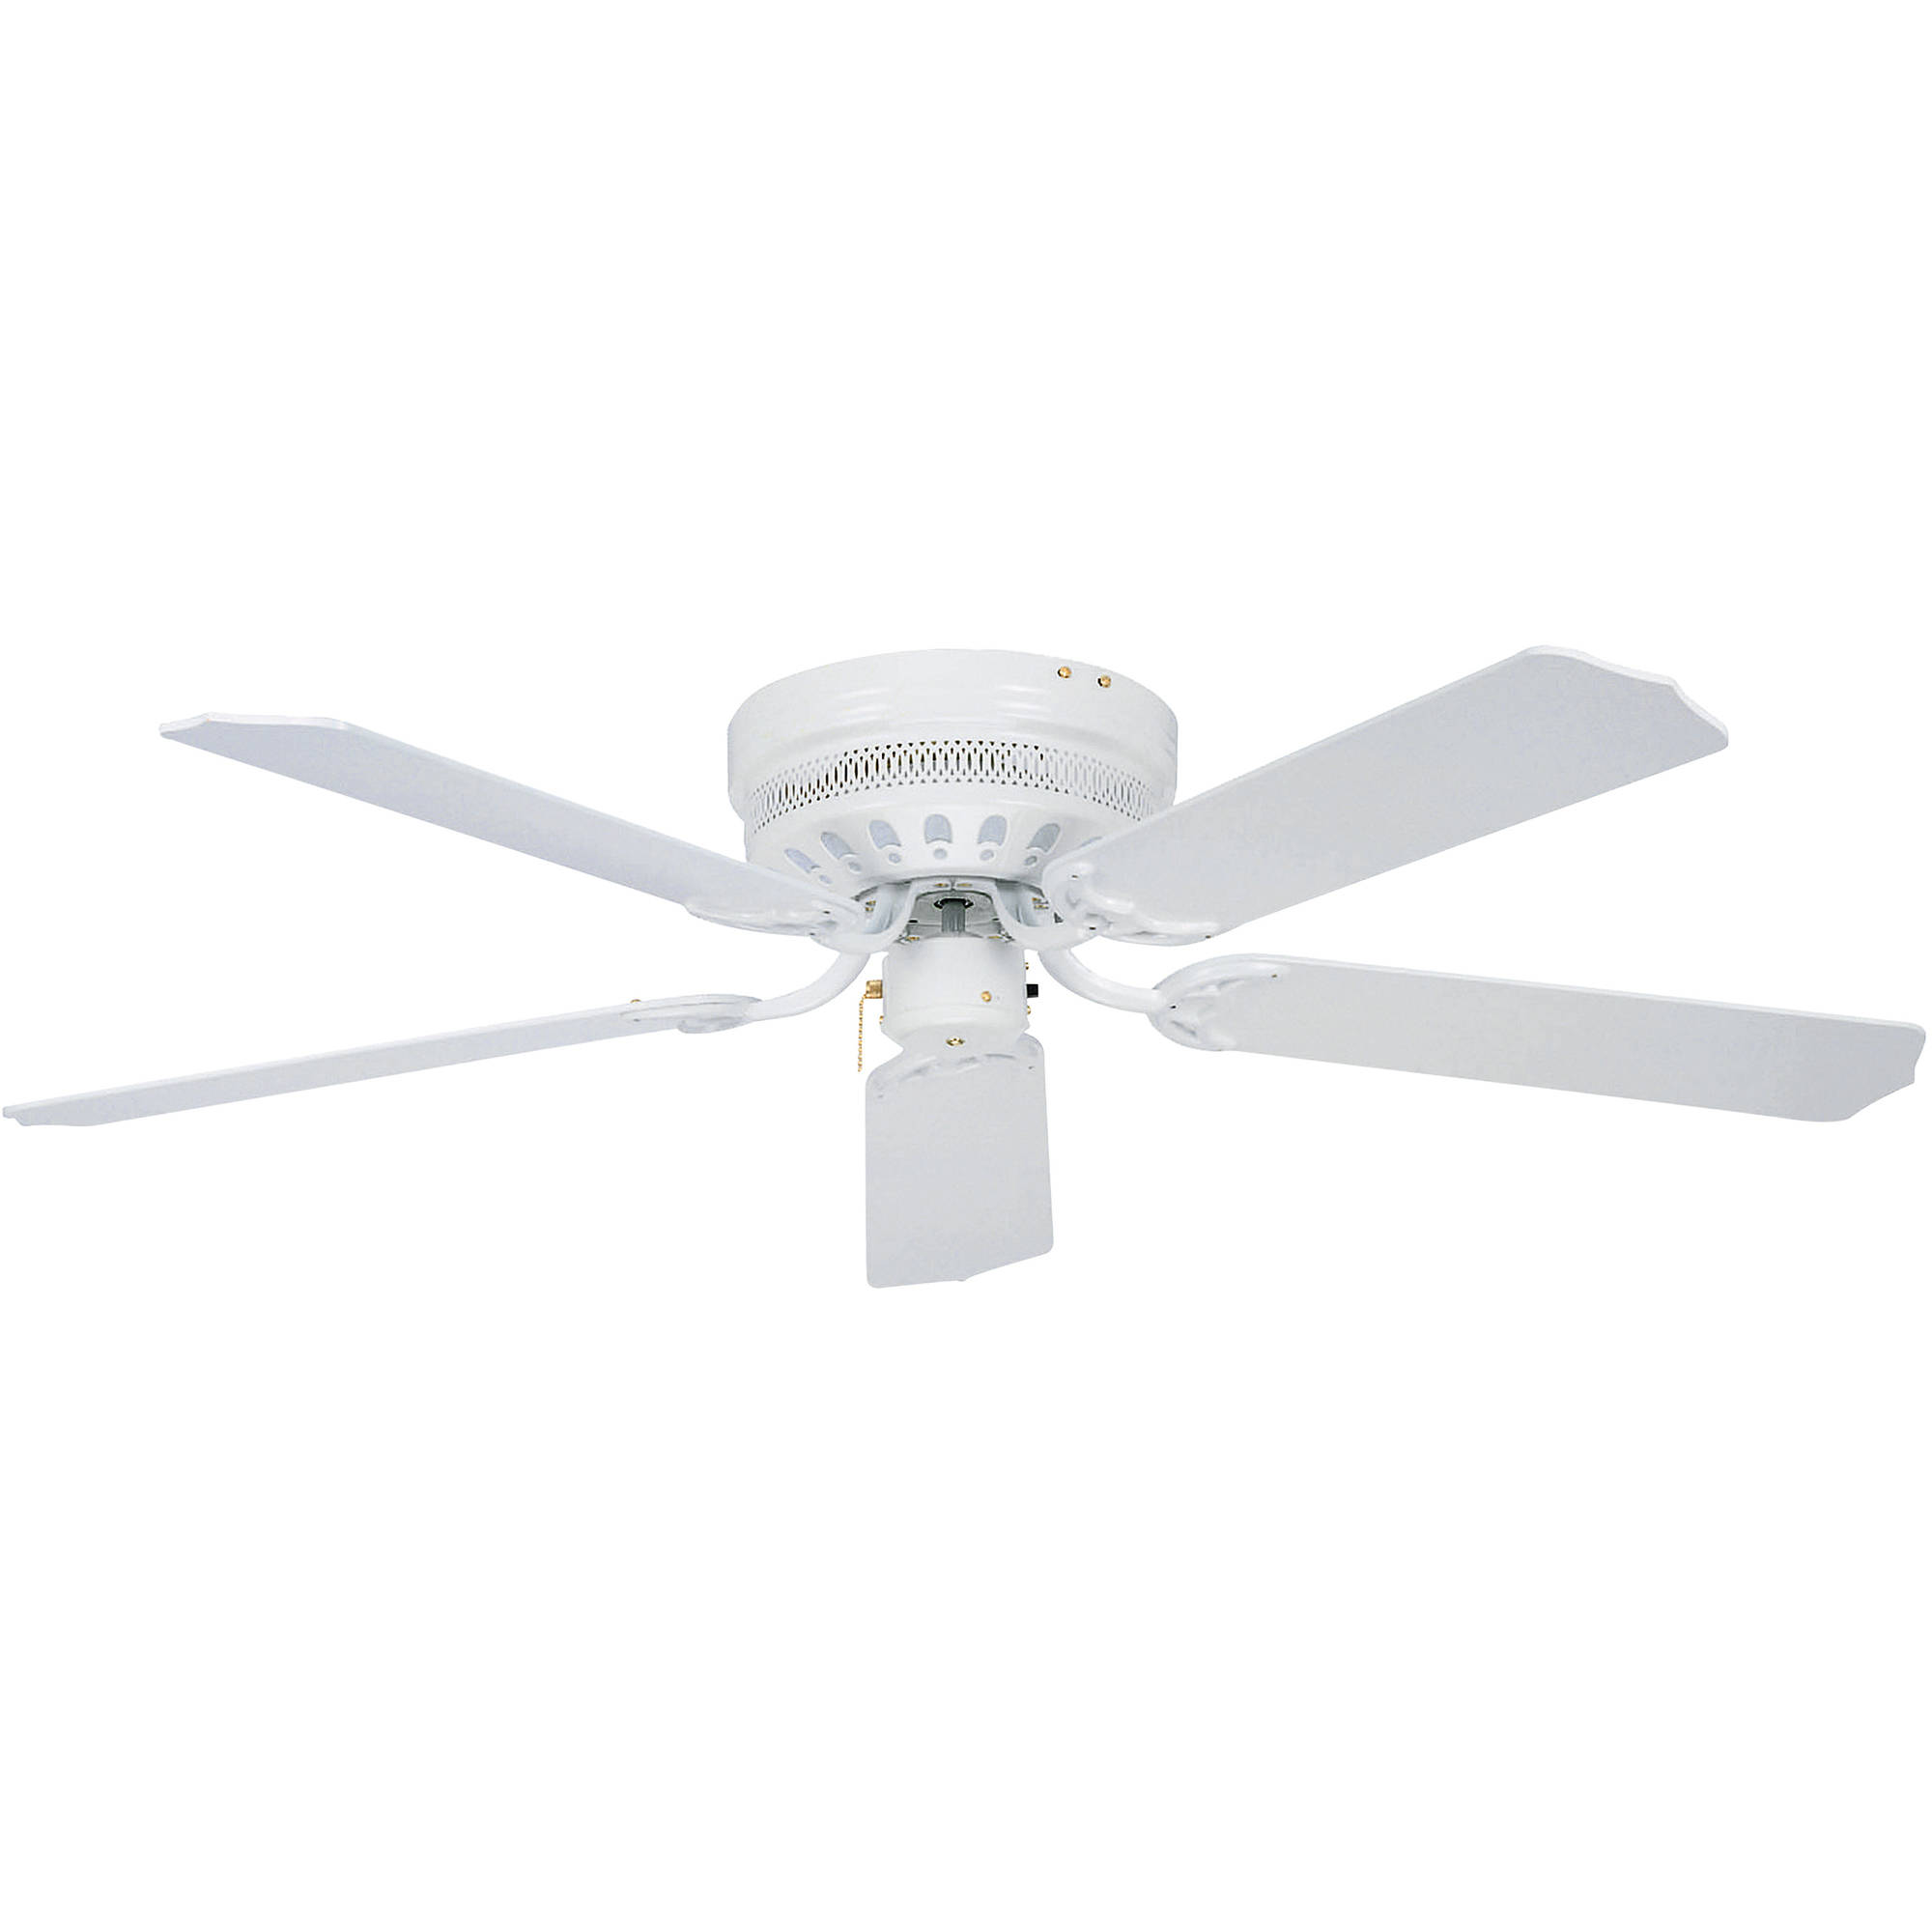 hight resolution of m c ceiling fan schematic